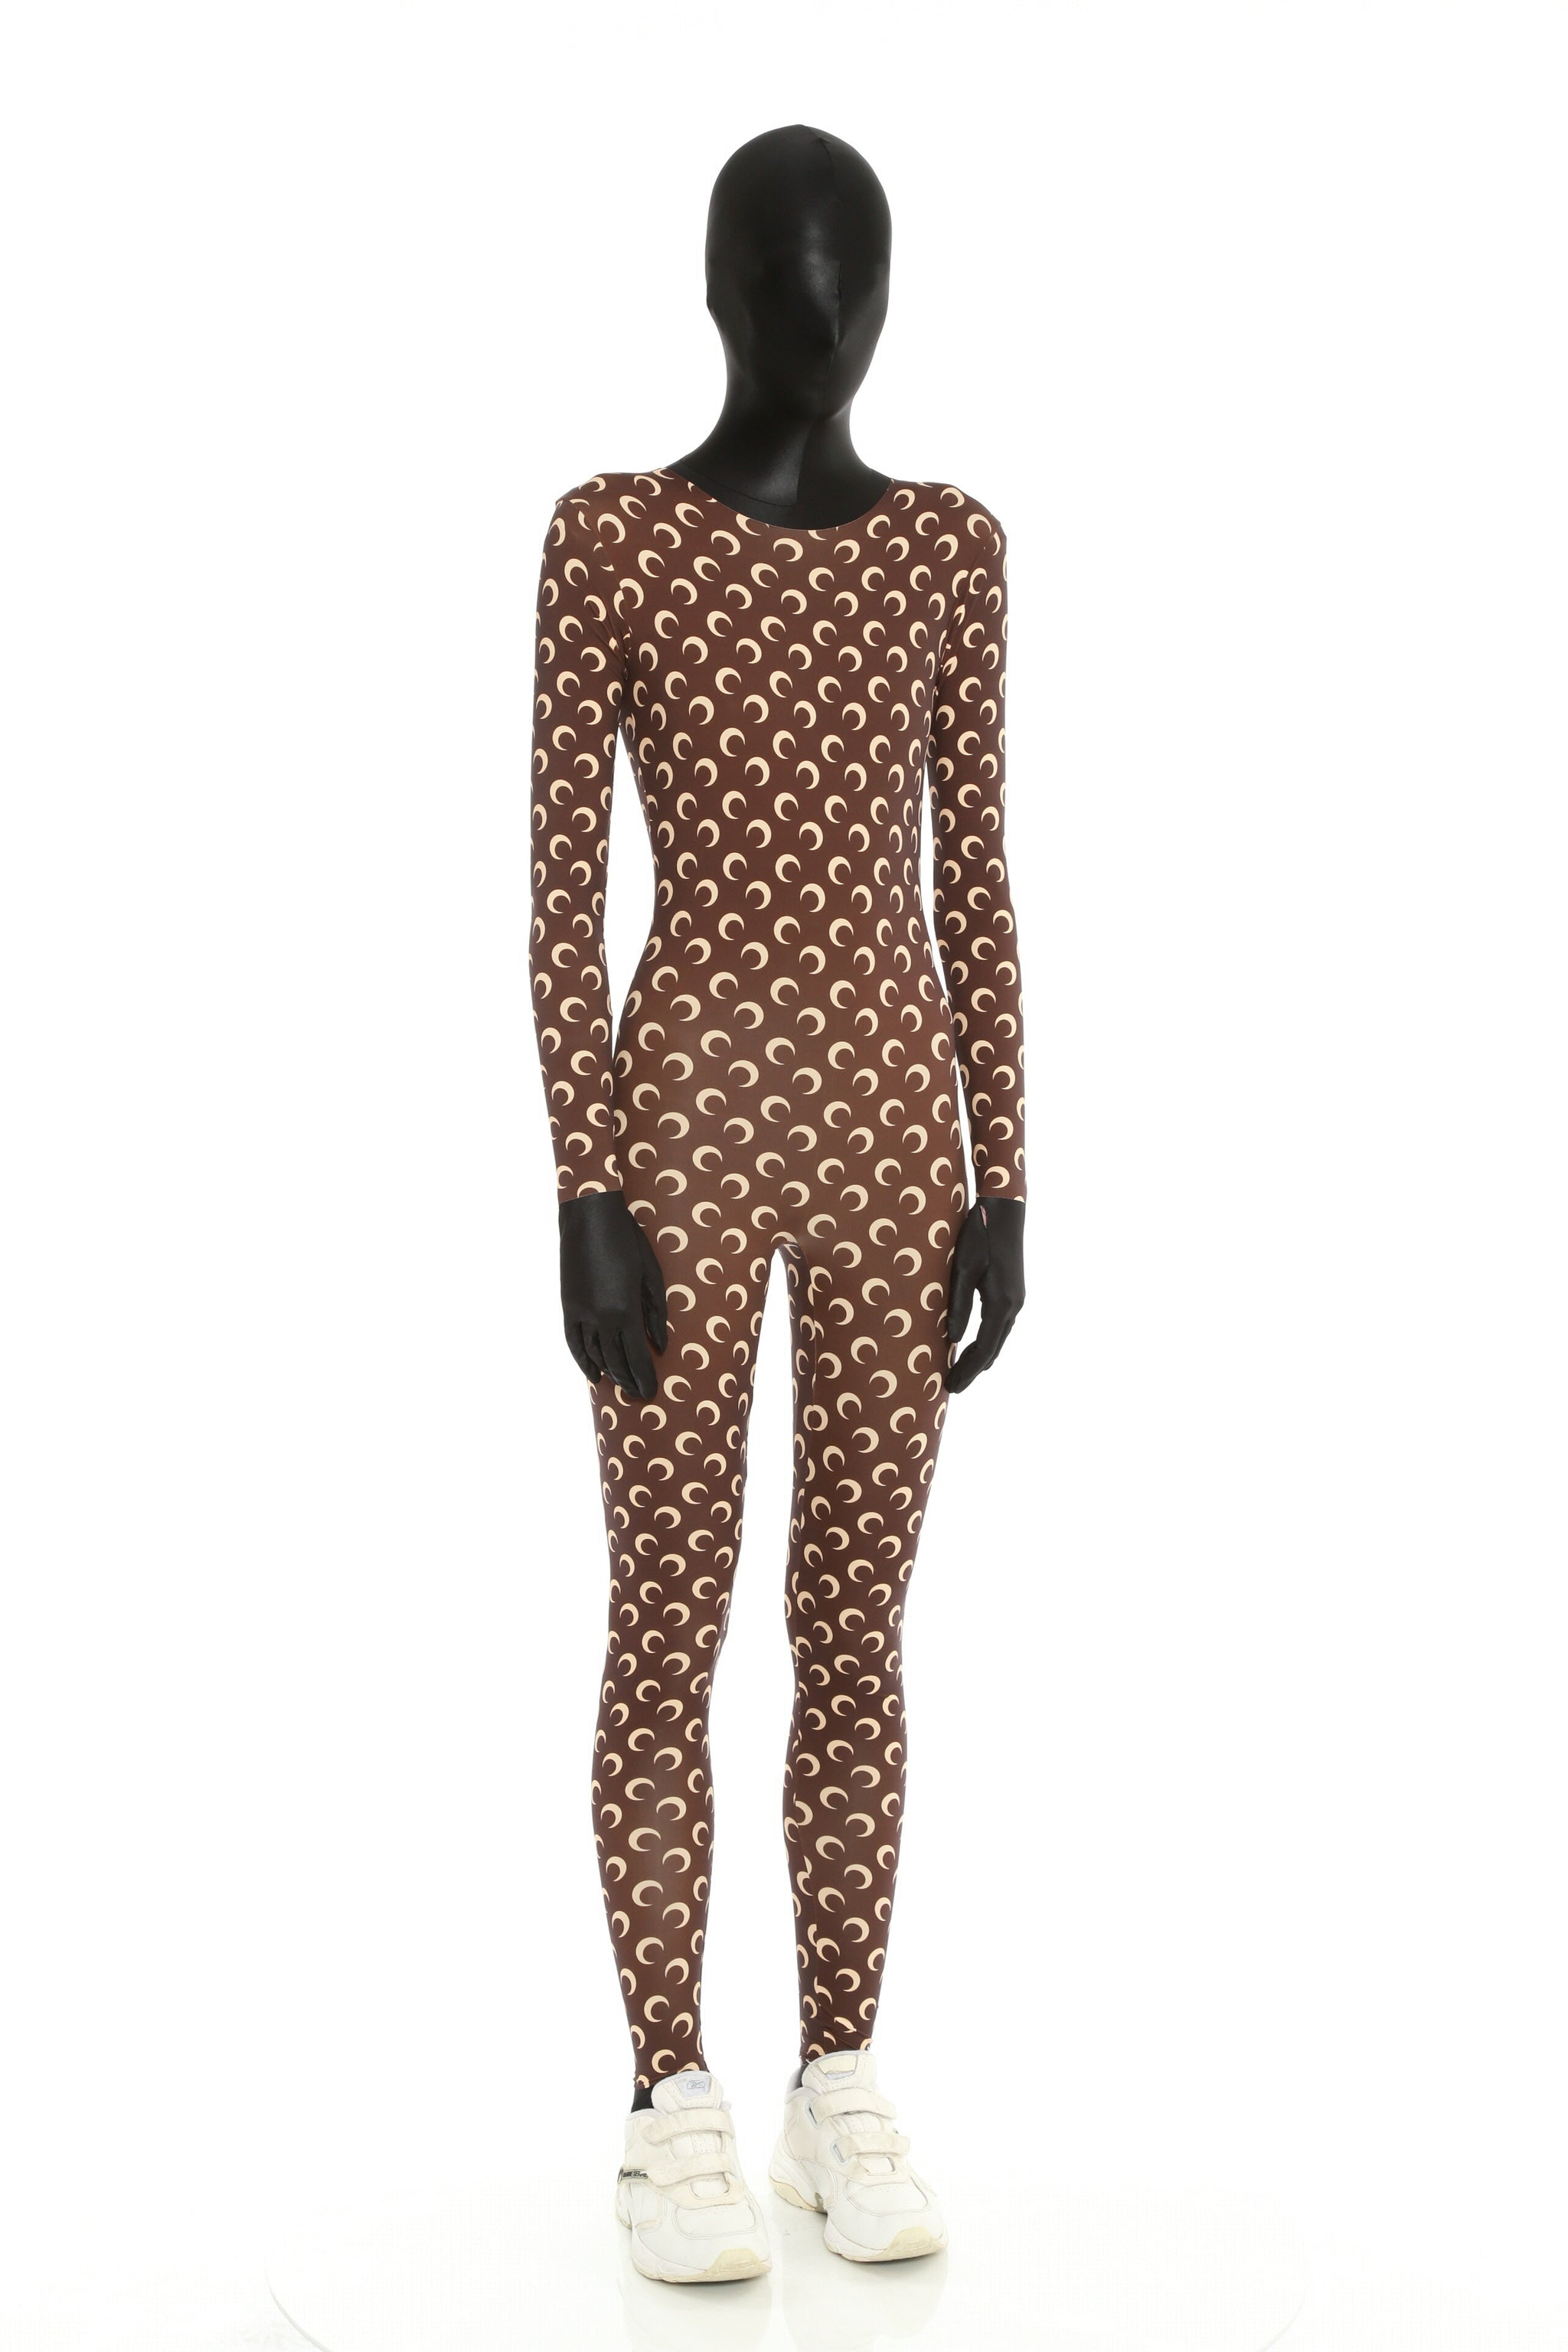 The Iconic All Over Moon Catsuit Brown